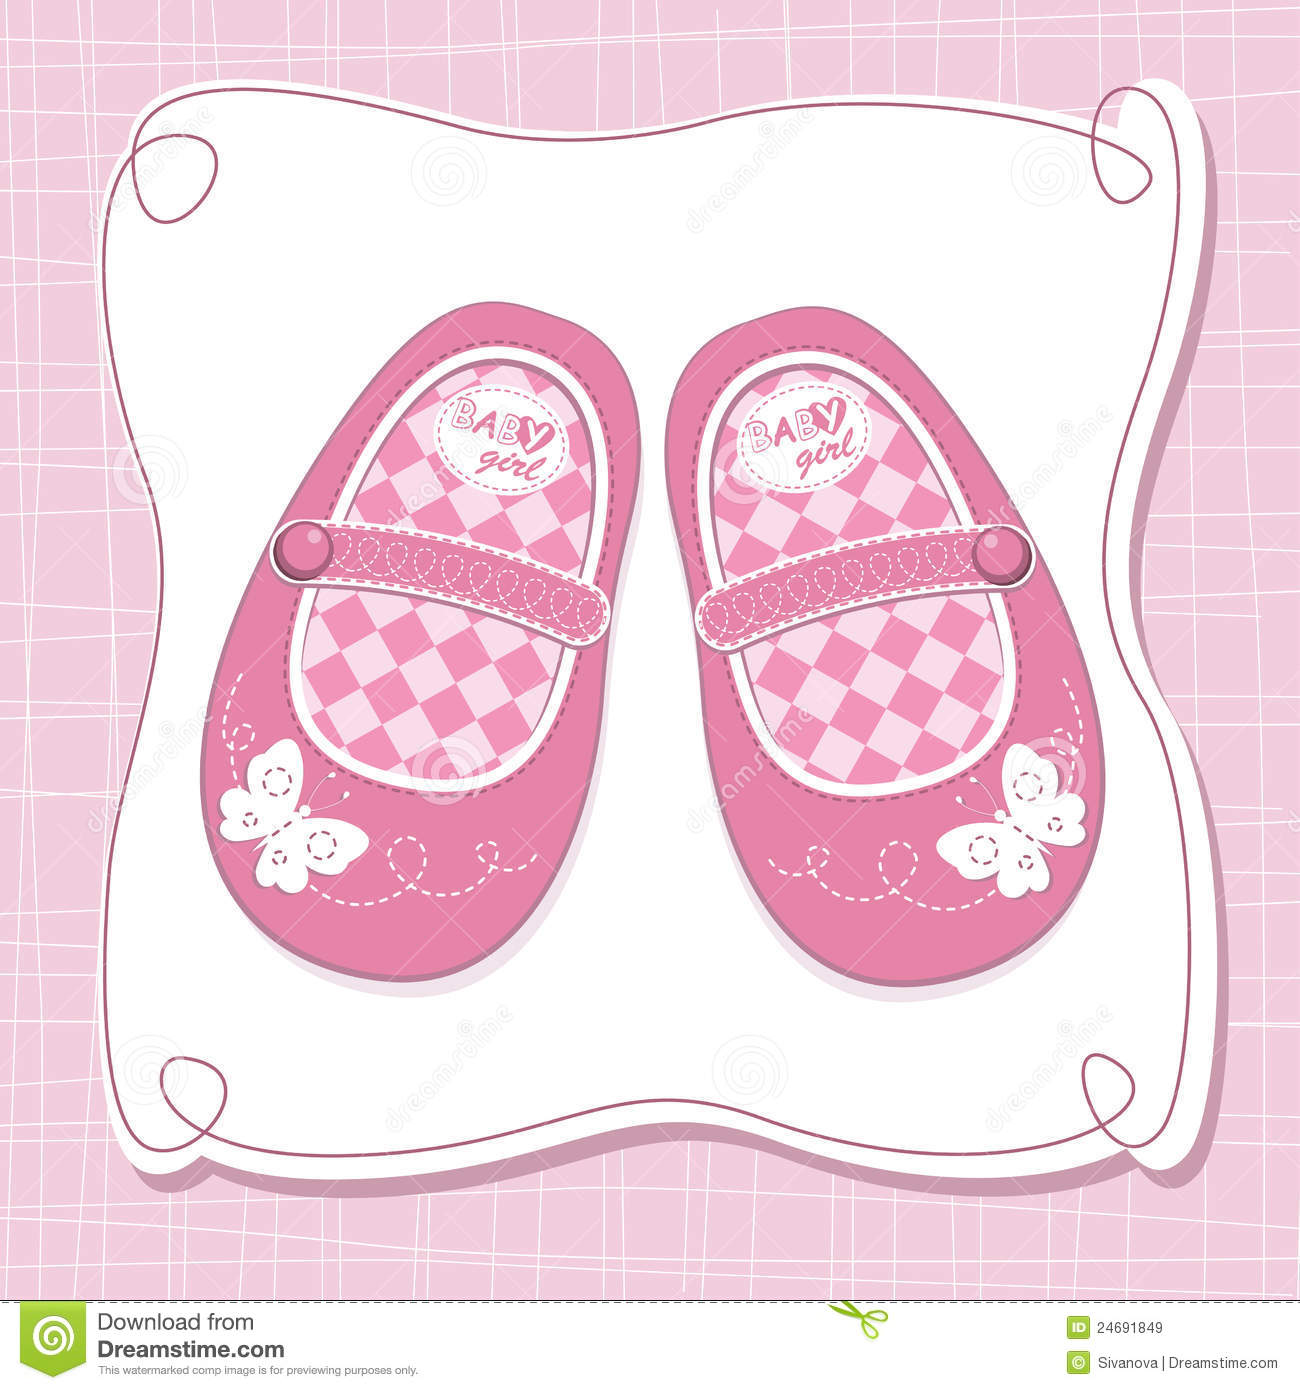 Baby girl shoes clipart.